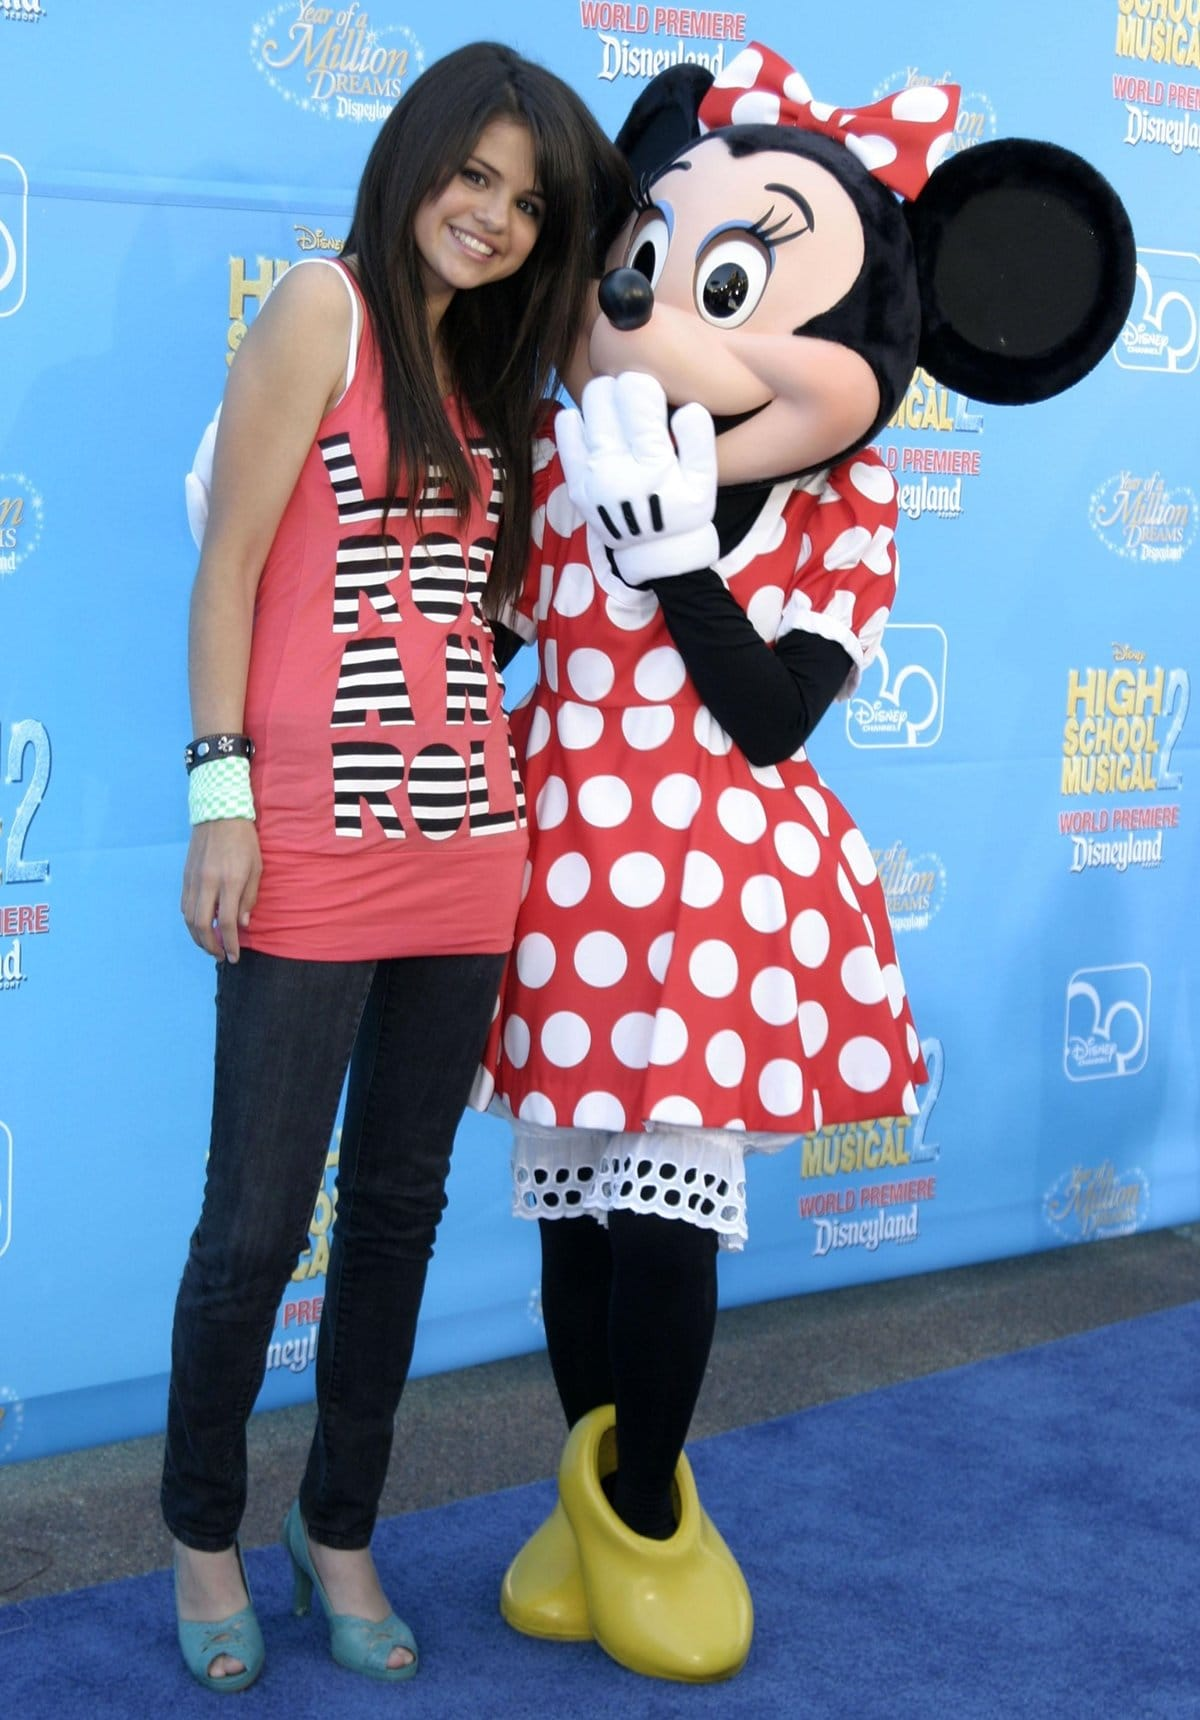 """Actress Selena Gomez and character Minnie Mouse arrive at the world premiere of Disney Channel's """"High School Musical 2"""""""